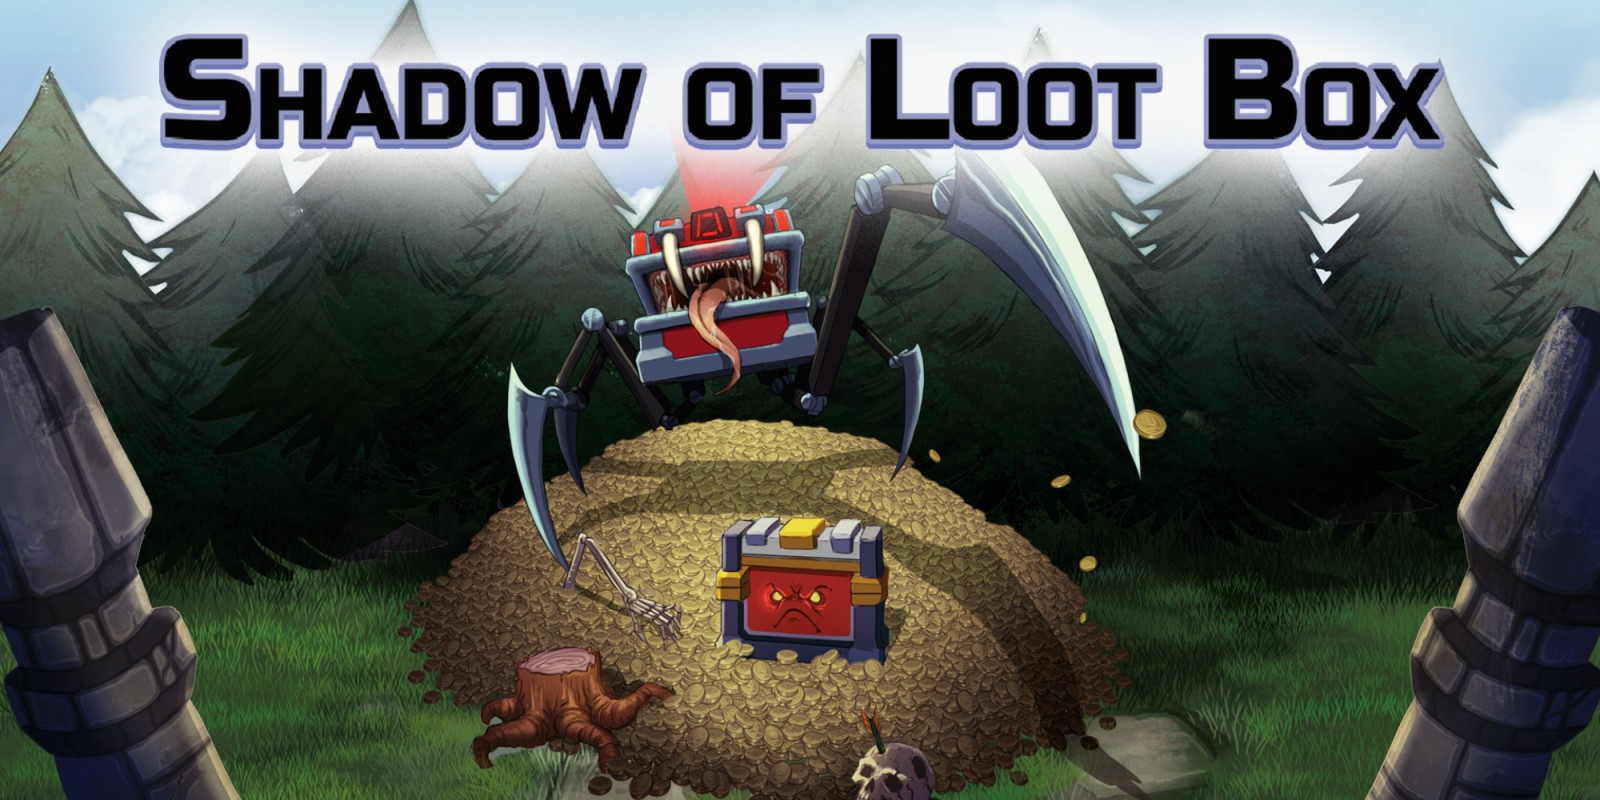 Shadow of Loot Box